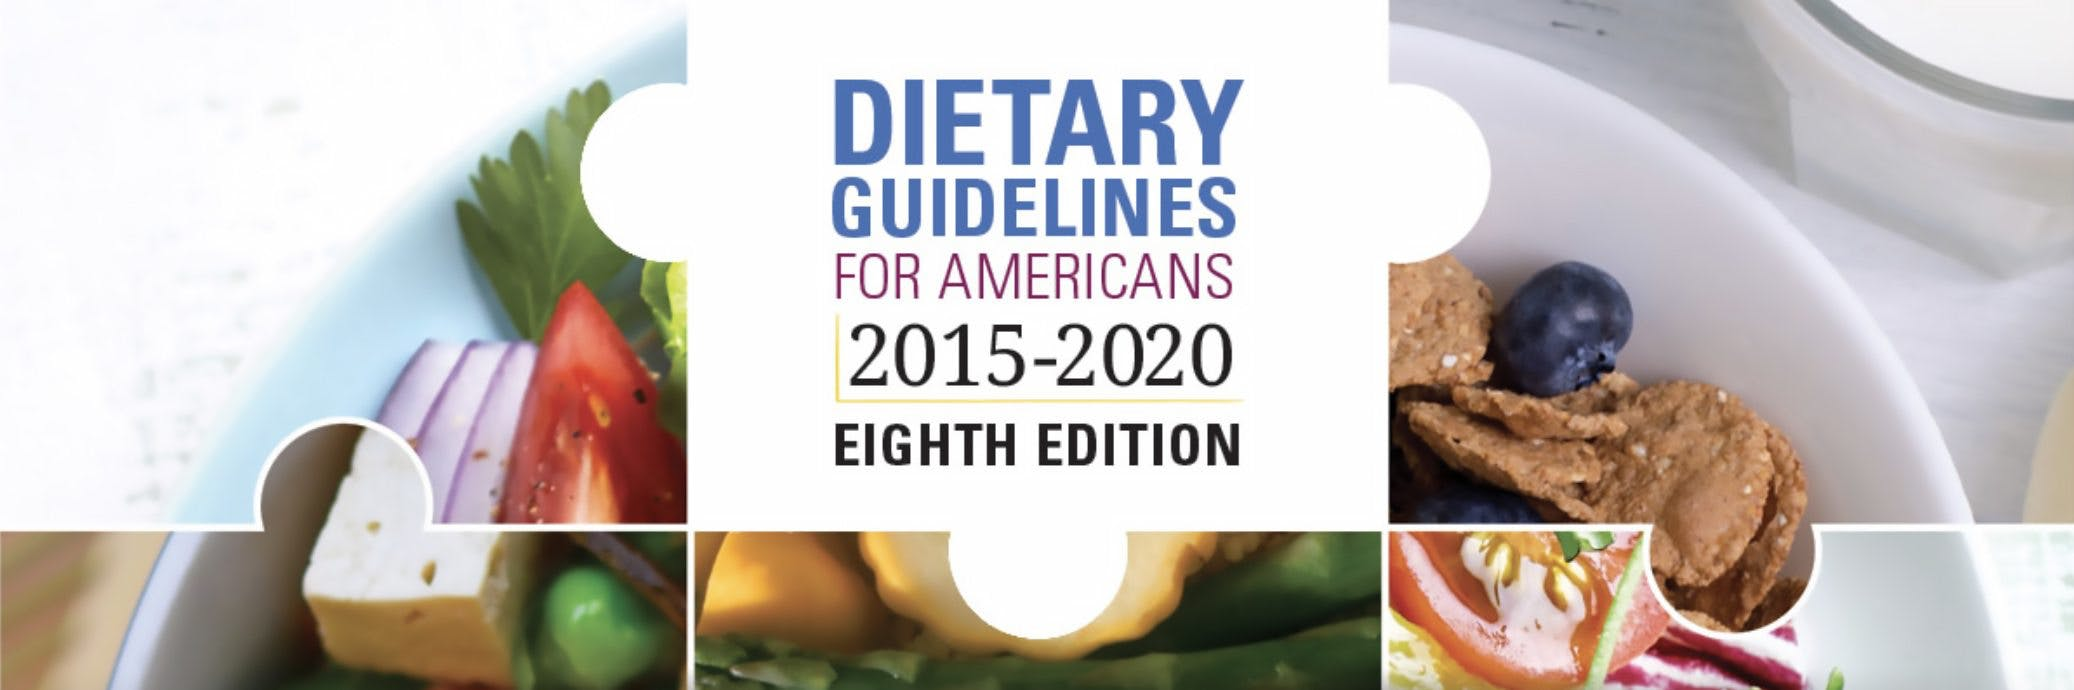 New Dietary Guidelines for Americans: Eat Less Sugar, More Cholesterol!